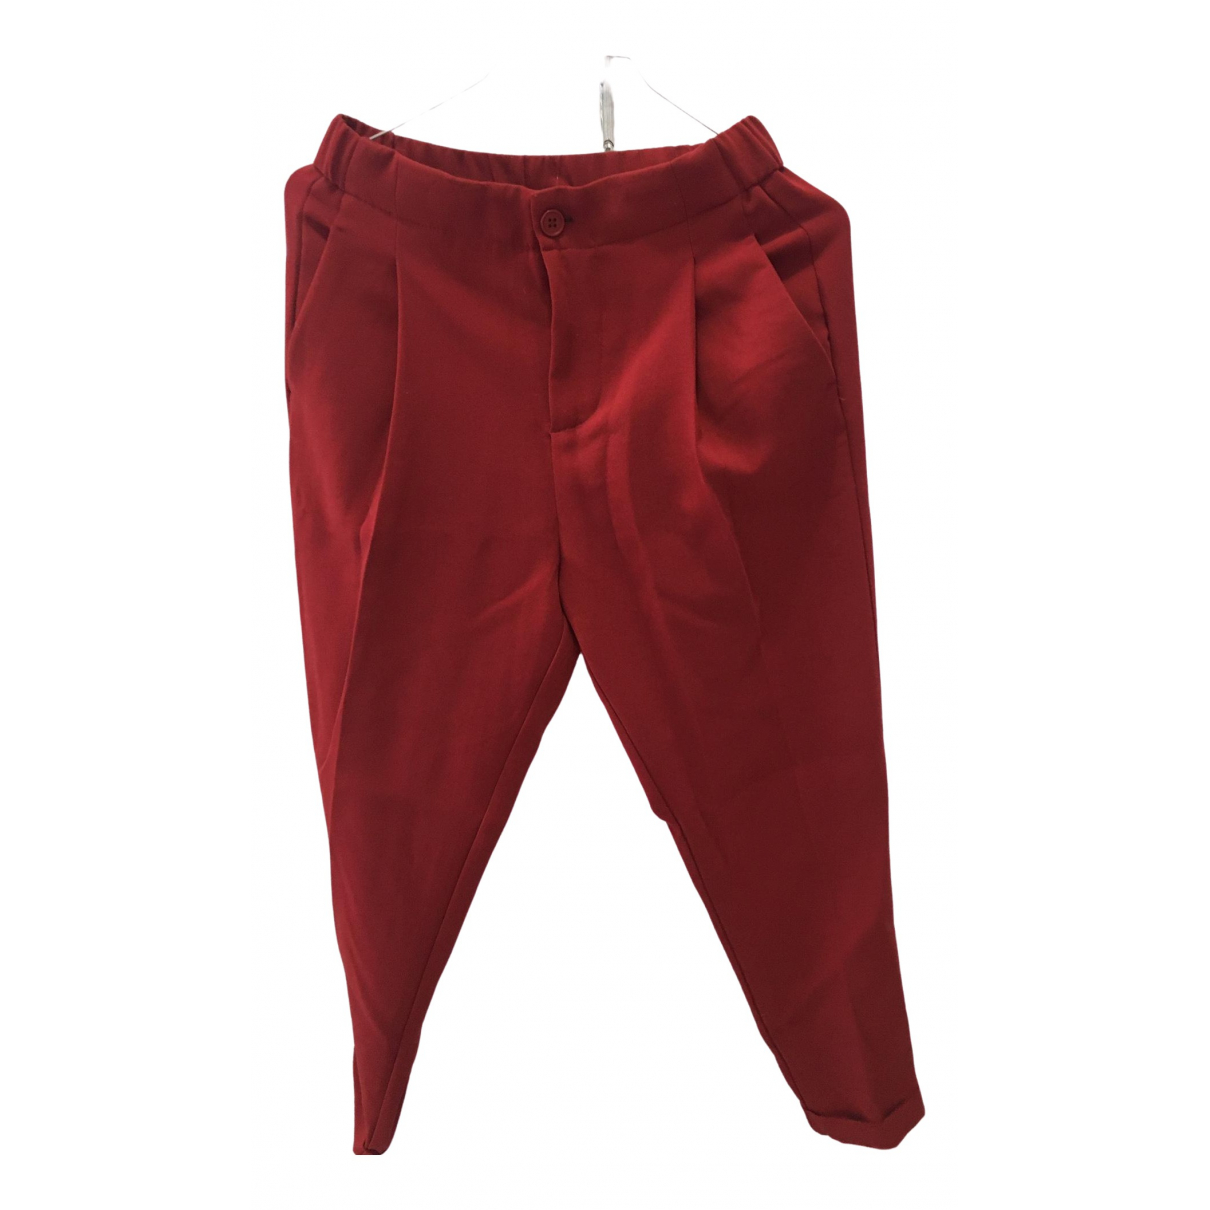 Benetton \N Red Cotton Trousers for Women 40 IT